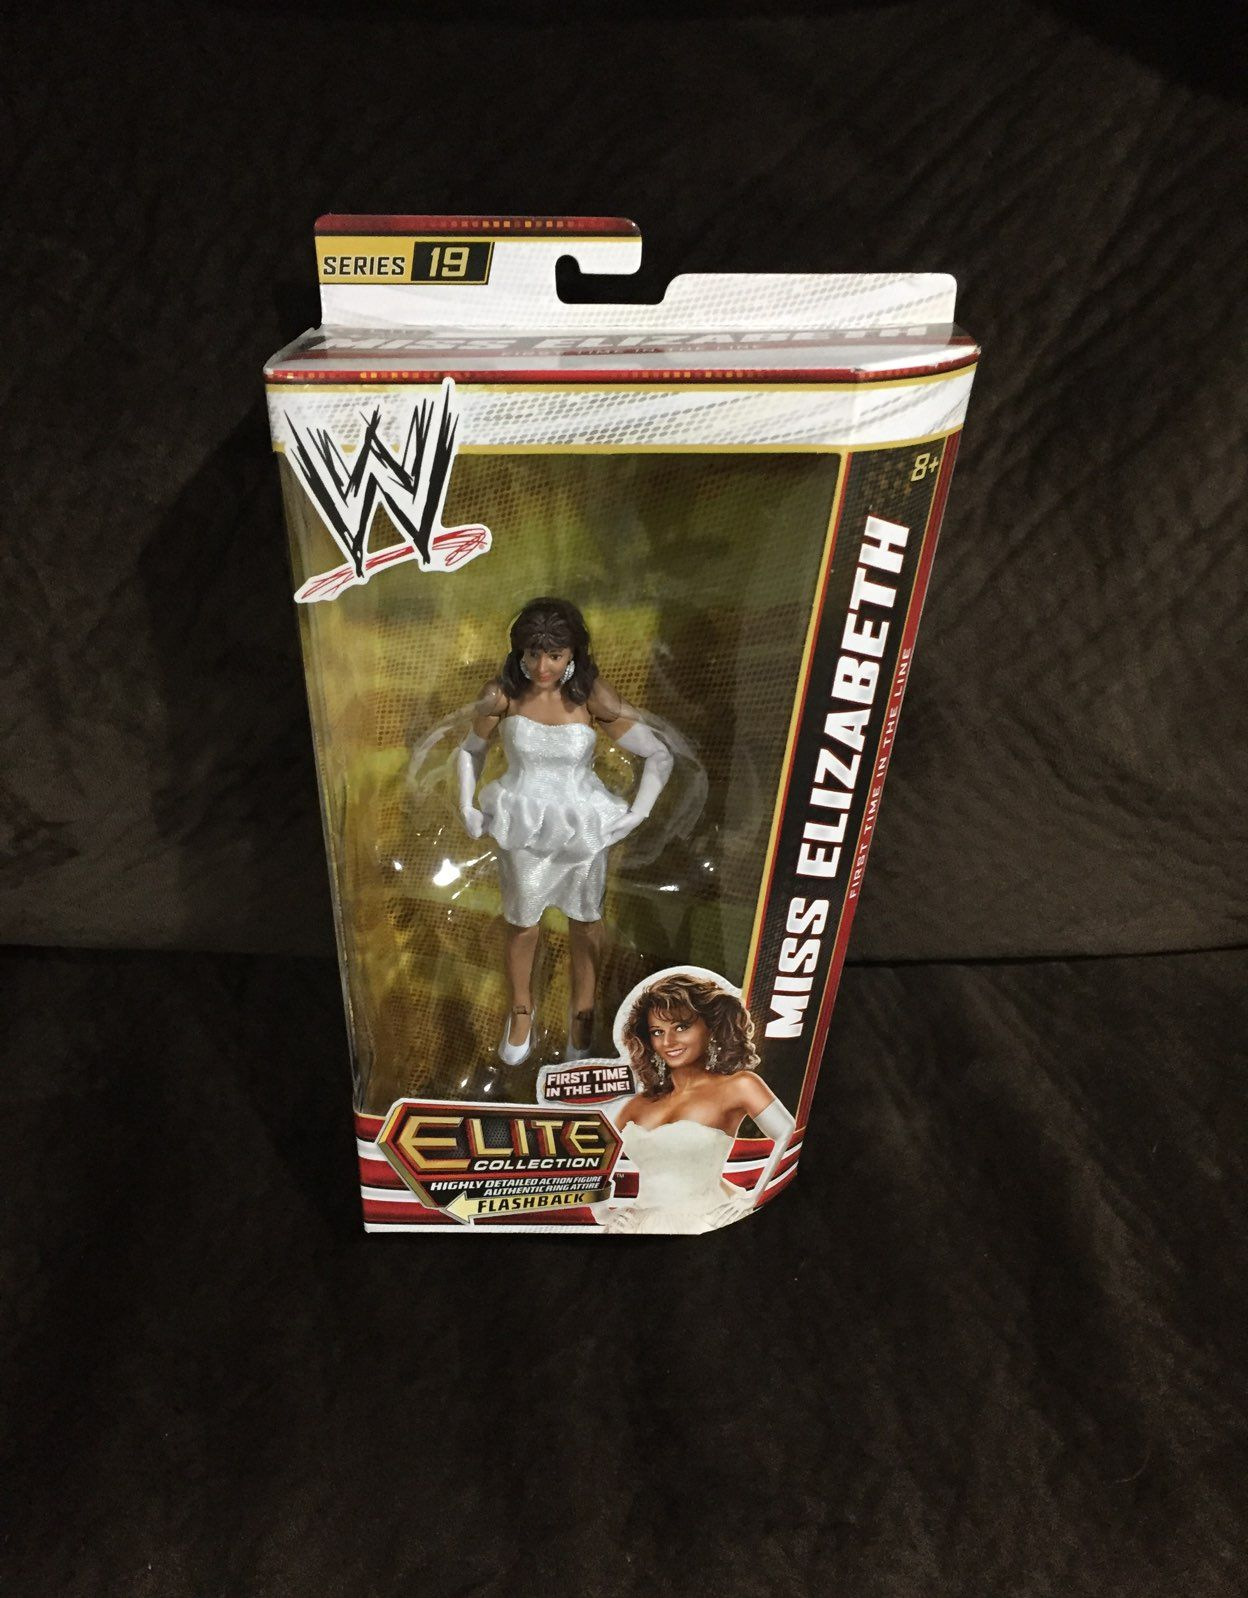 Cool item WWEWWF WRESTLING FIGURE Miss Elizabeth Stuff to buy